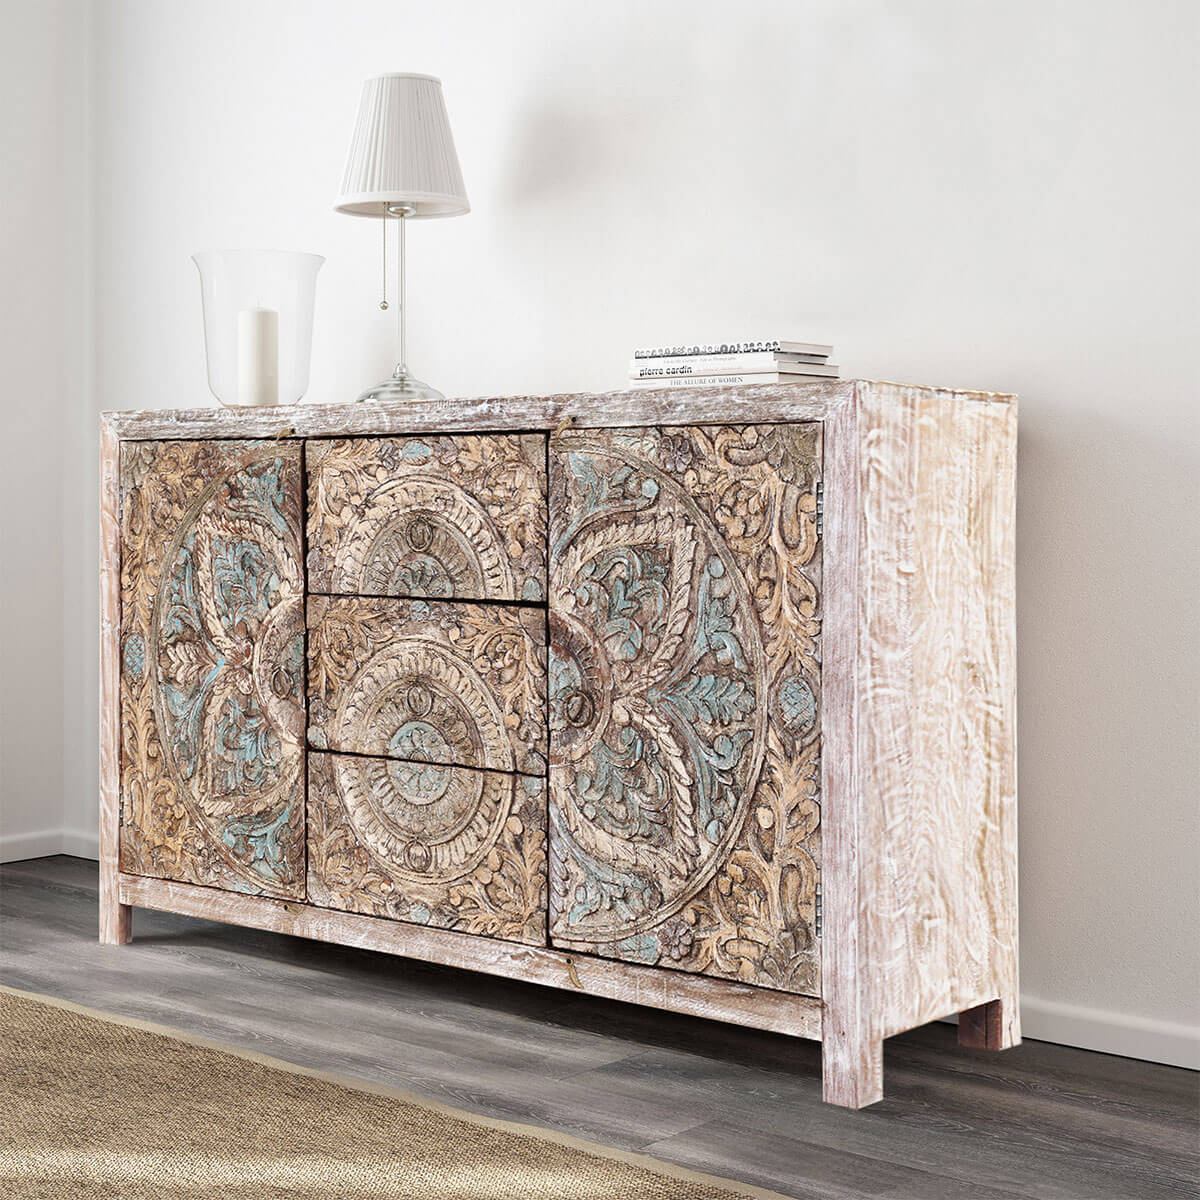 Avenal Floral Mandalas Solid Wood Hand Carved Accent Buffet Cabinet within Avenal Sideboards (Image 7 of 30)